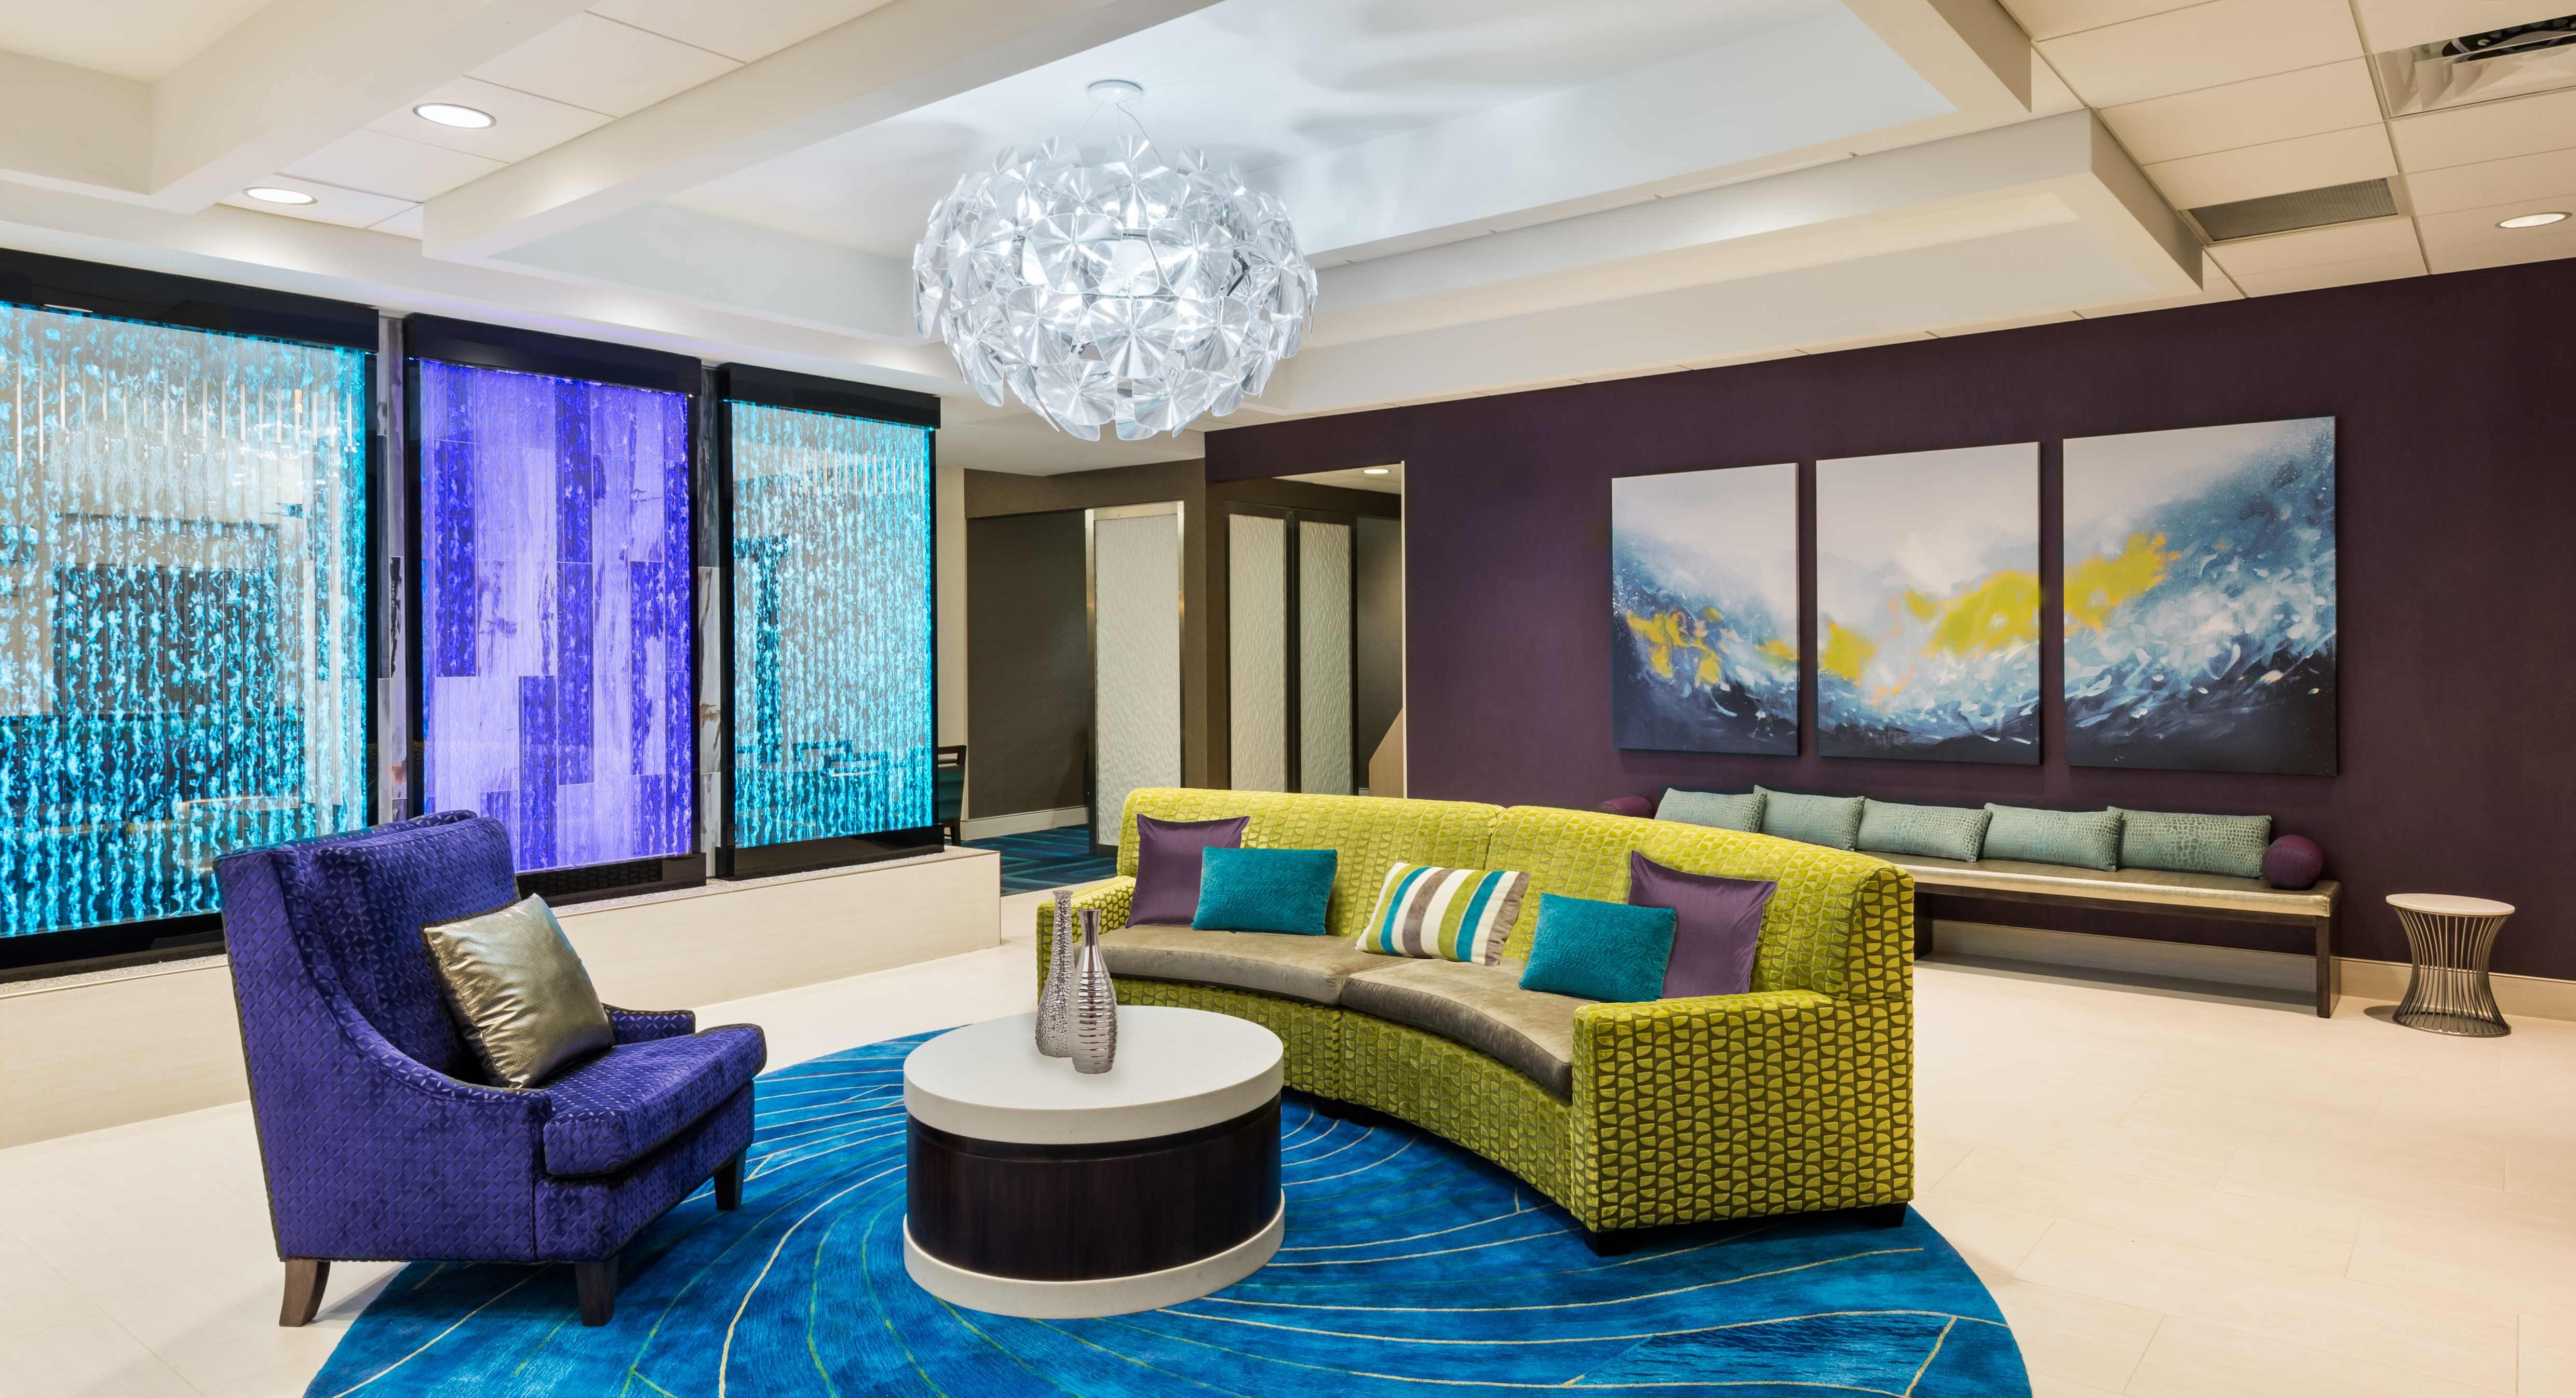 ... A Premier Interior Hospitality Design Firm, Today Announced The  Completion Of The Homewood Suites By Hilton, Orlando For Buffalo Lodging  Associates.